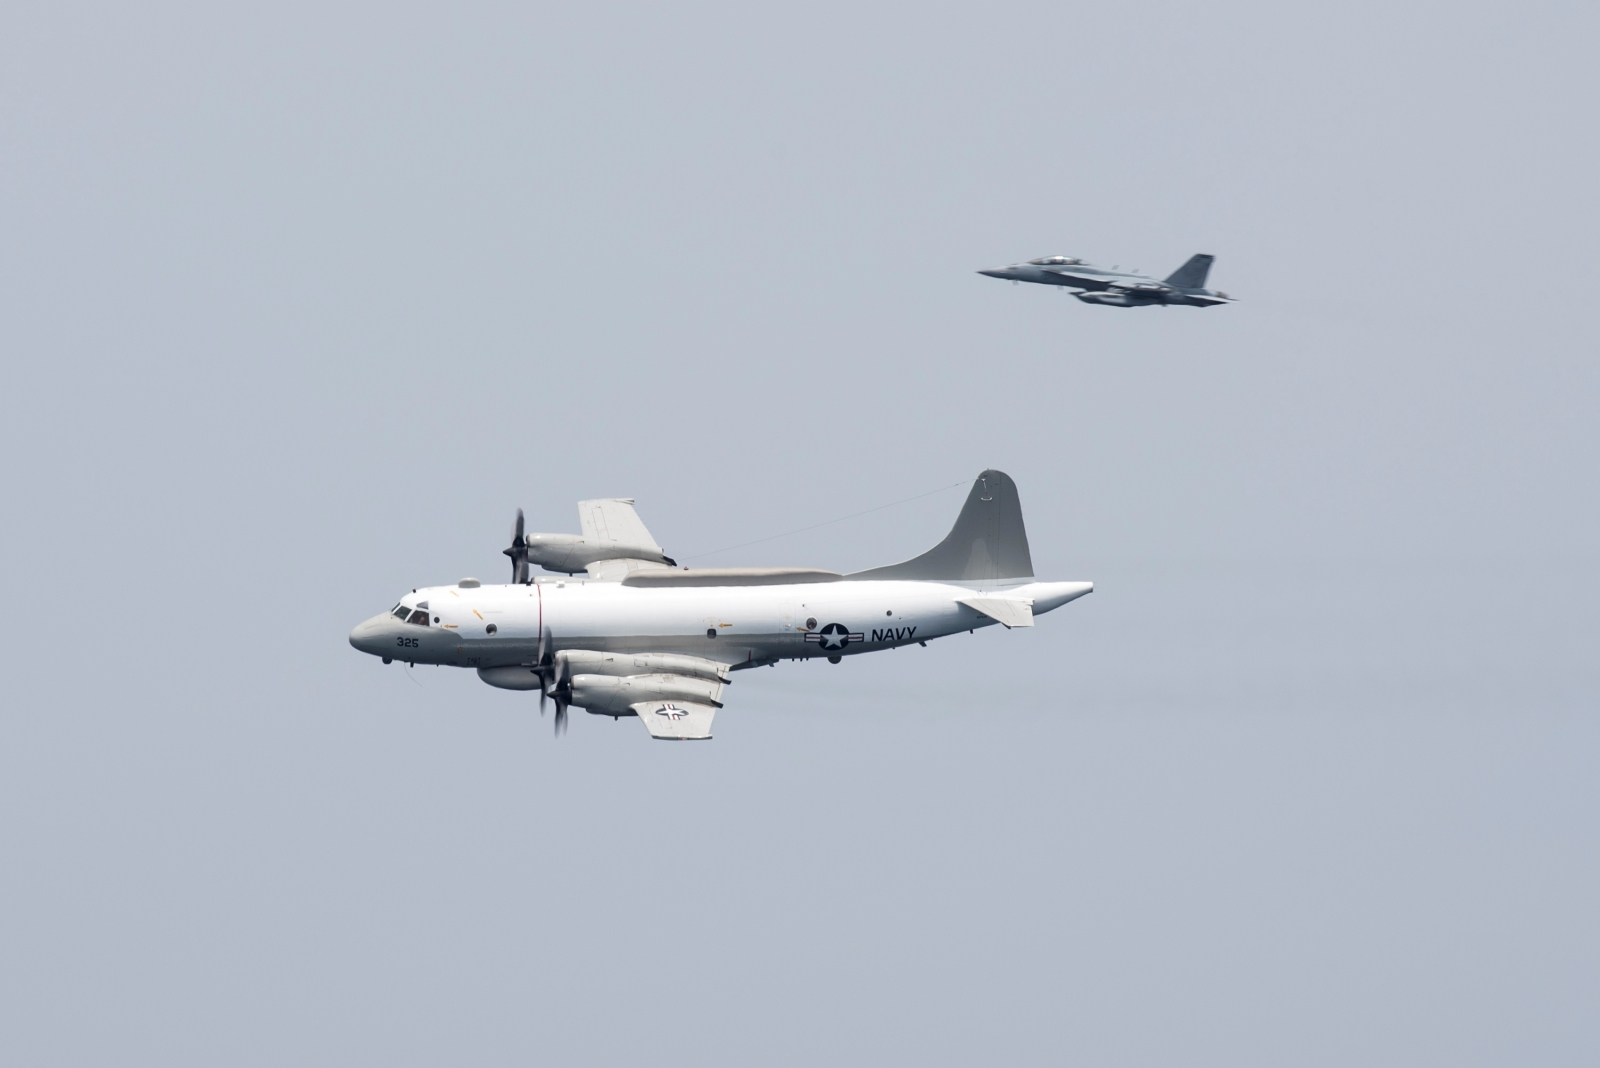 Chinese fighter jet performed 'unsafe' intercept of US Navy plane